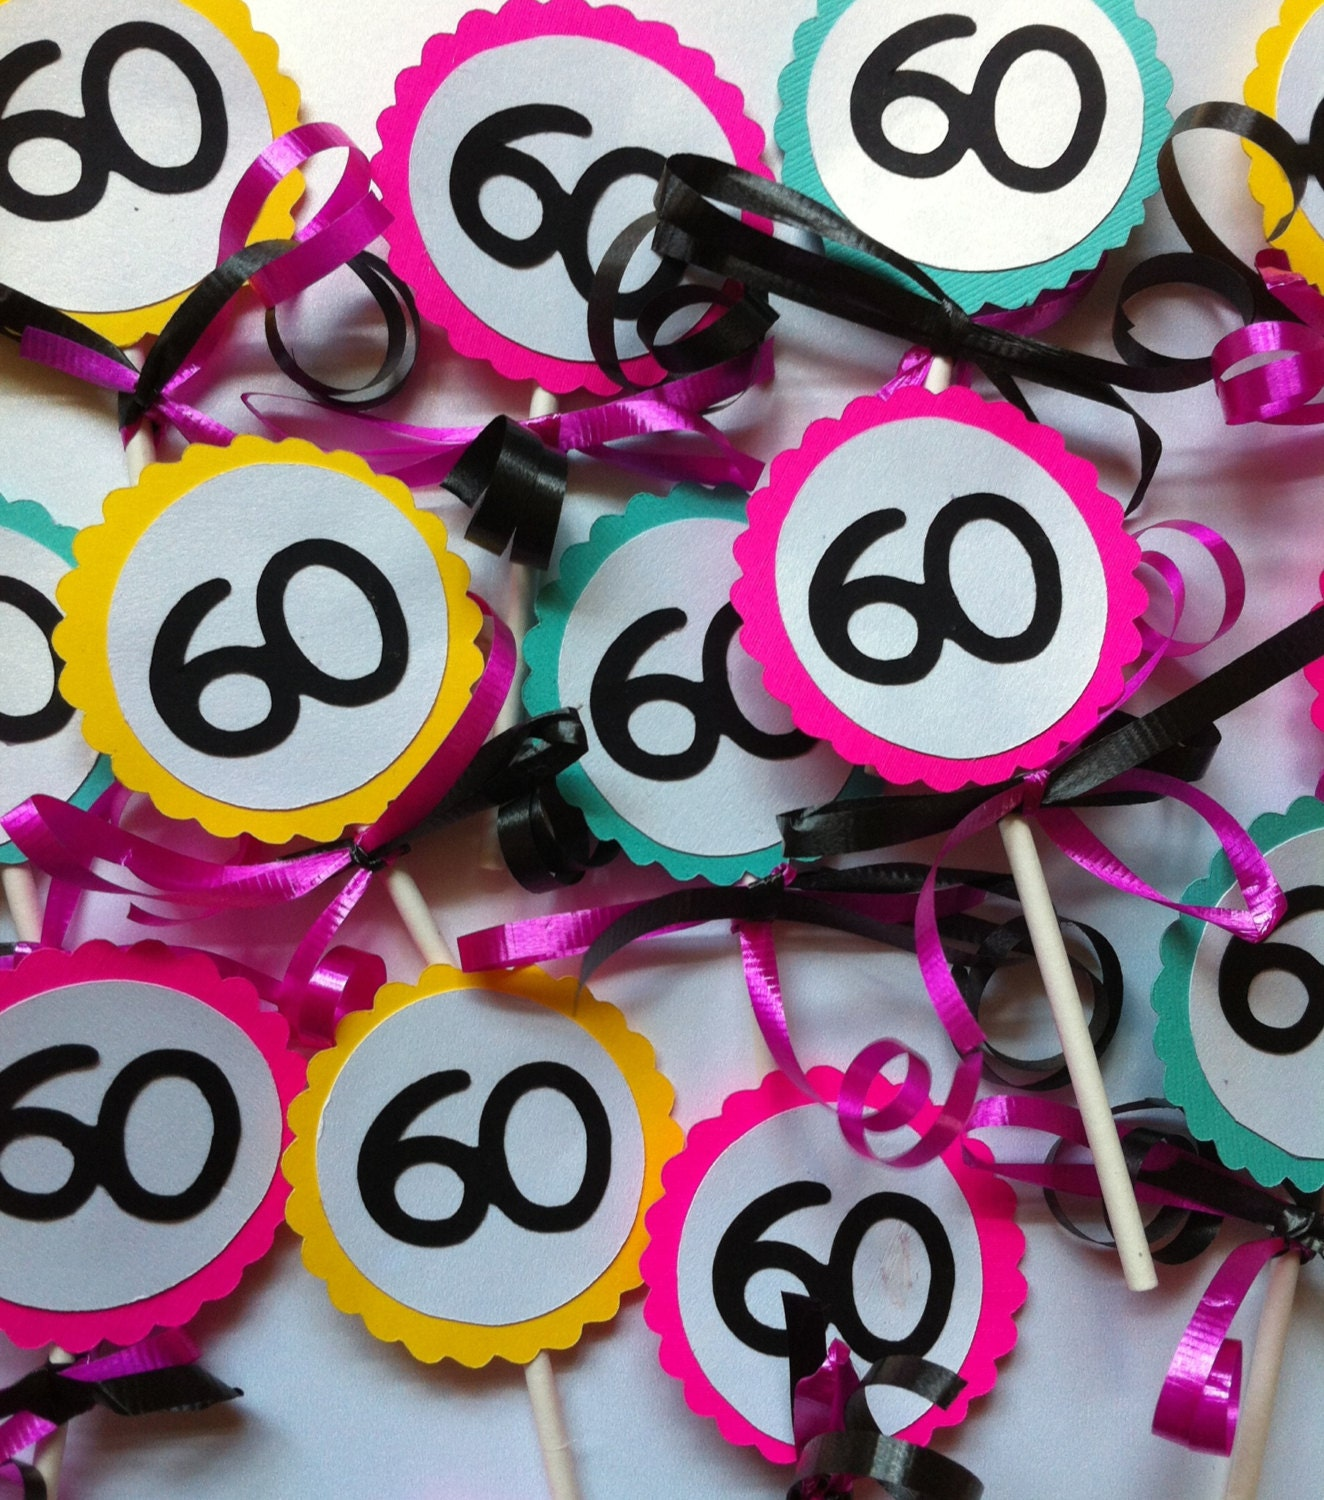 60th birthday decorations party favors ideas for 60th birthday decoration